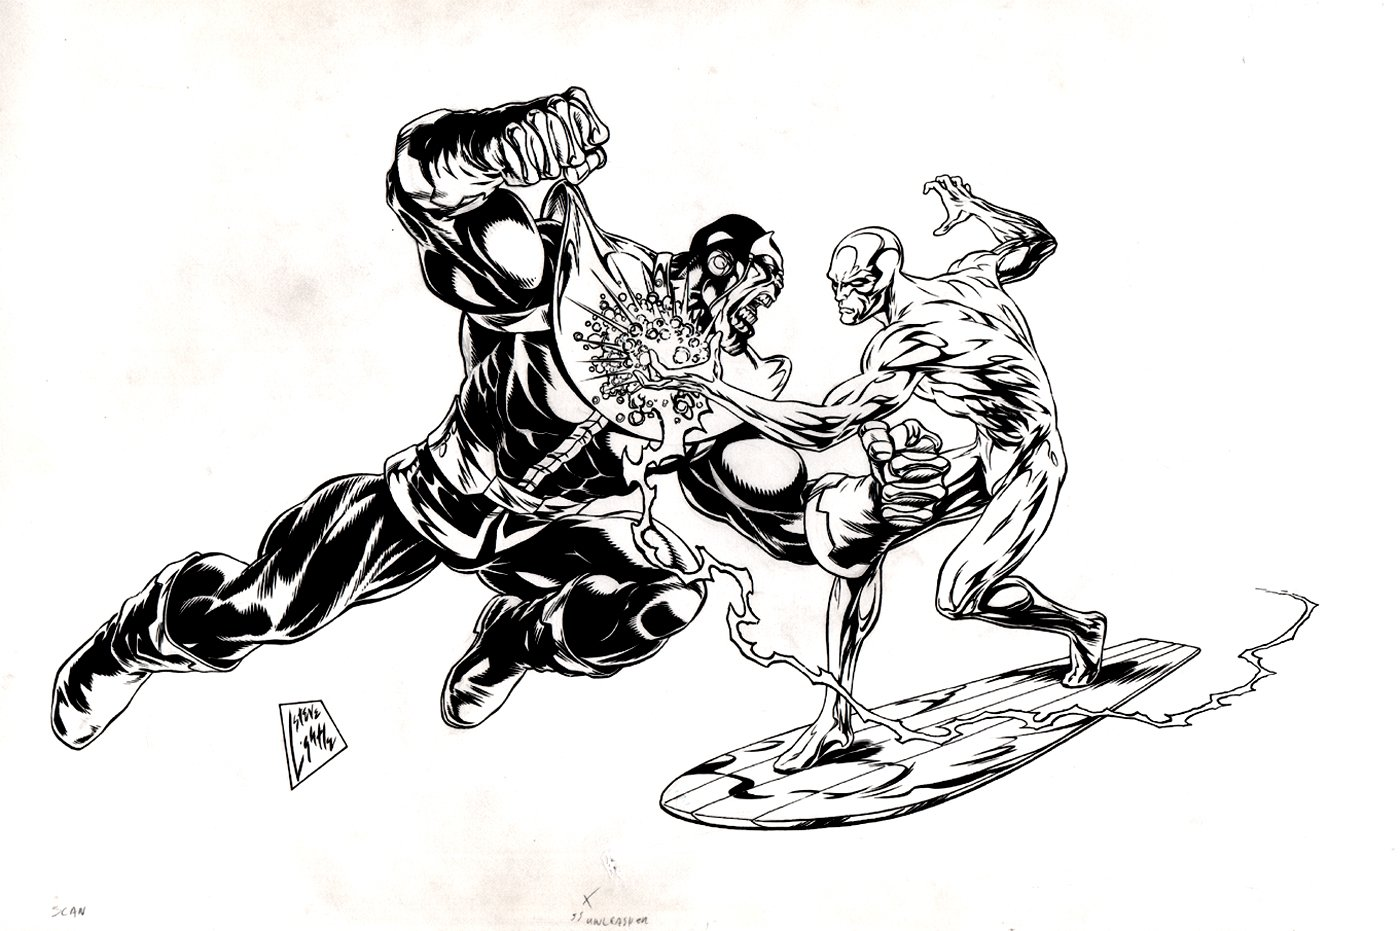 Thanos vs Silver Surfer Pinup (Possibly Created For Statue?)